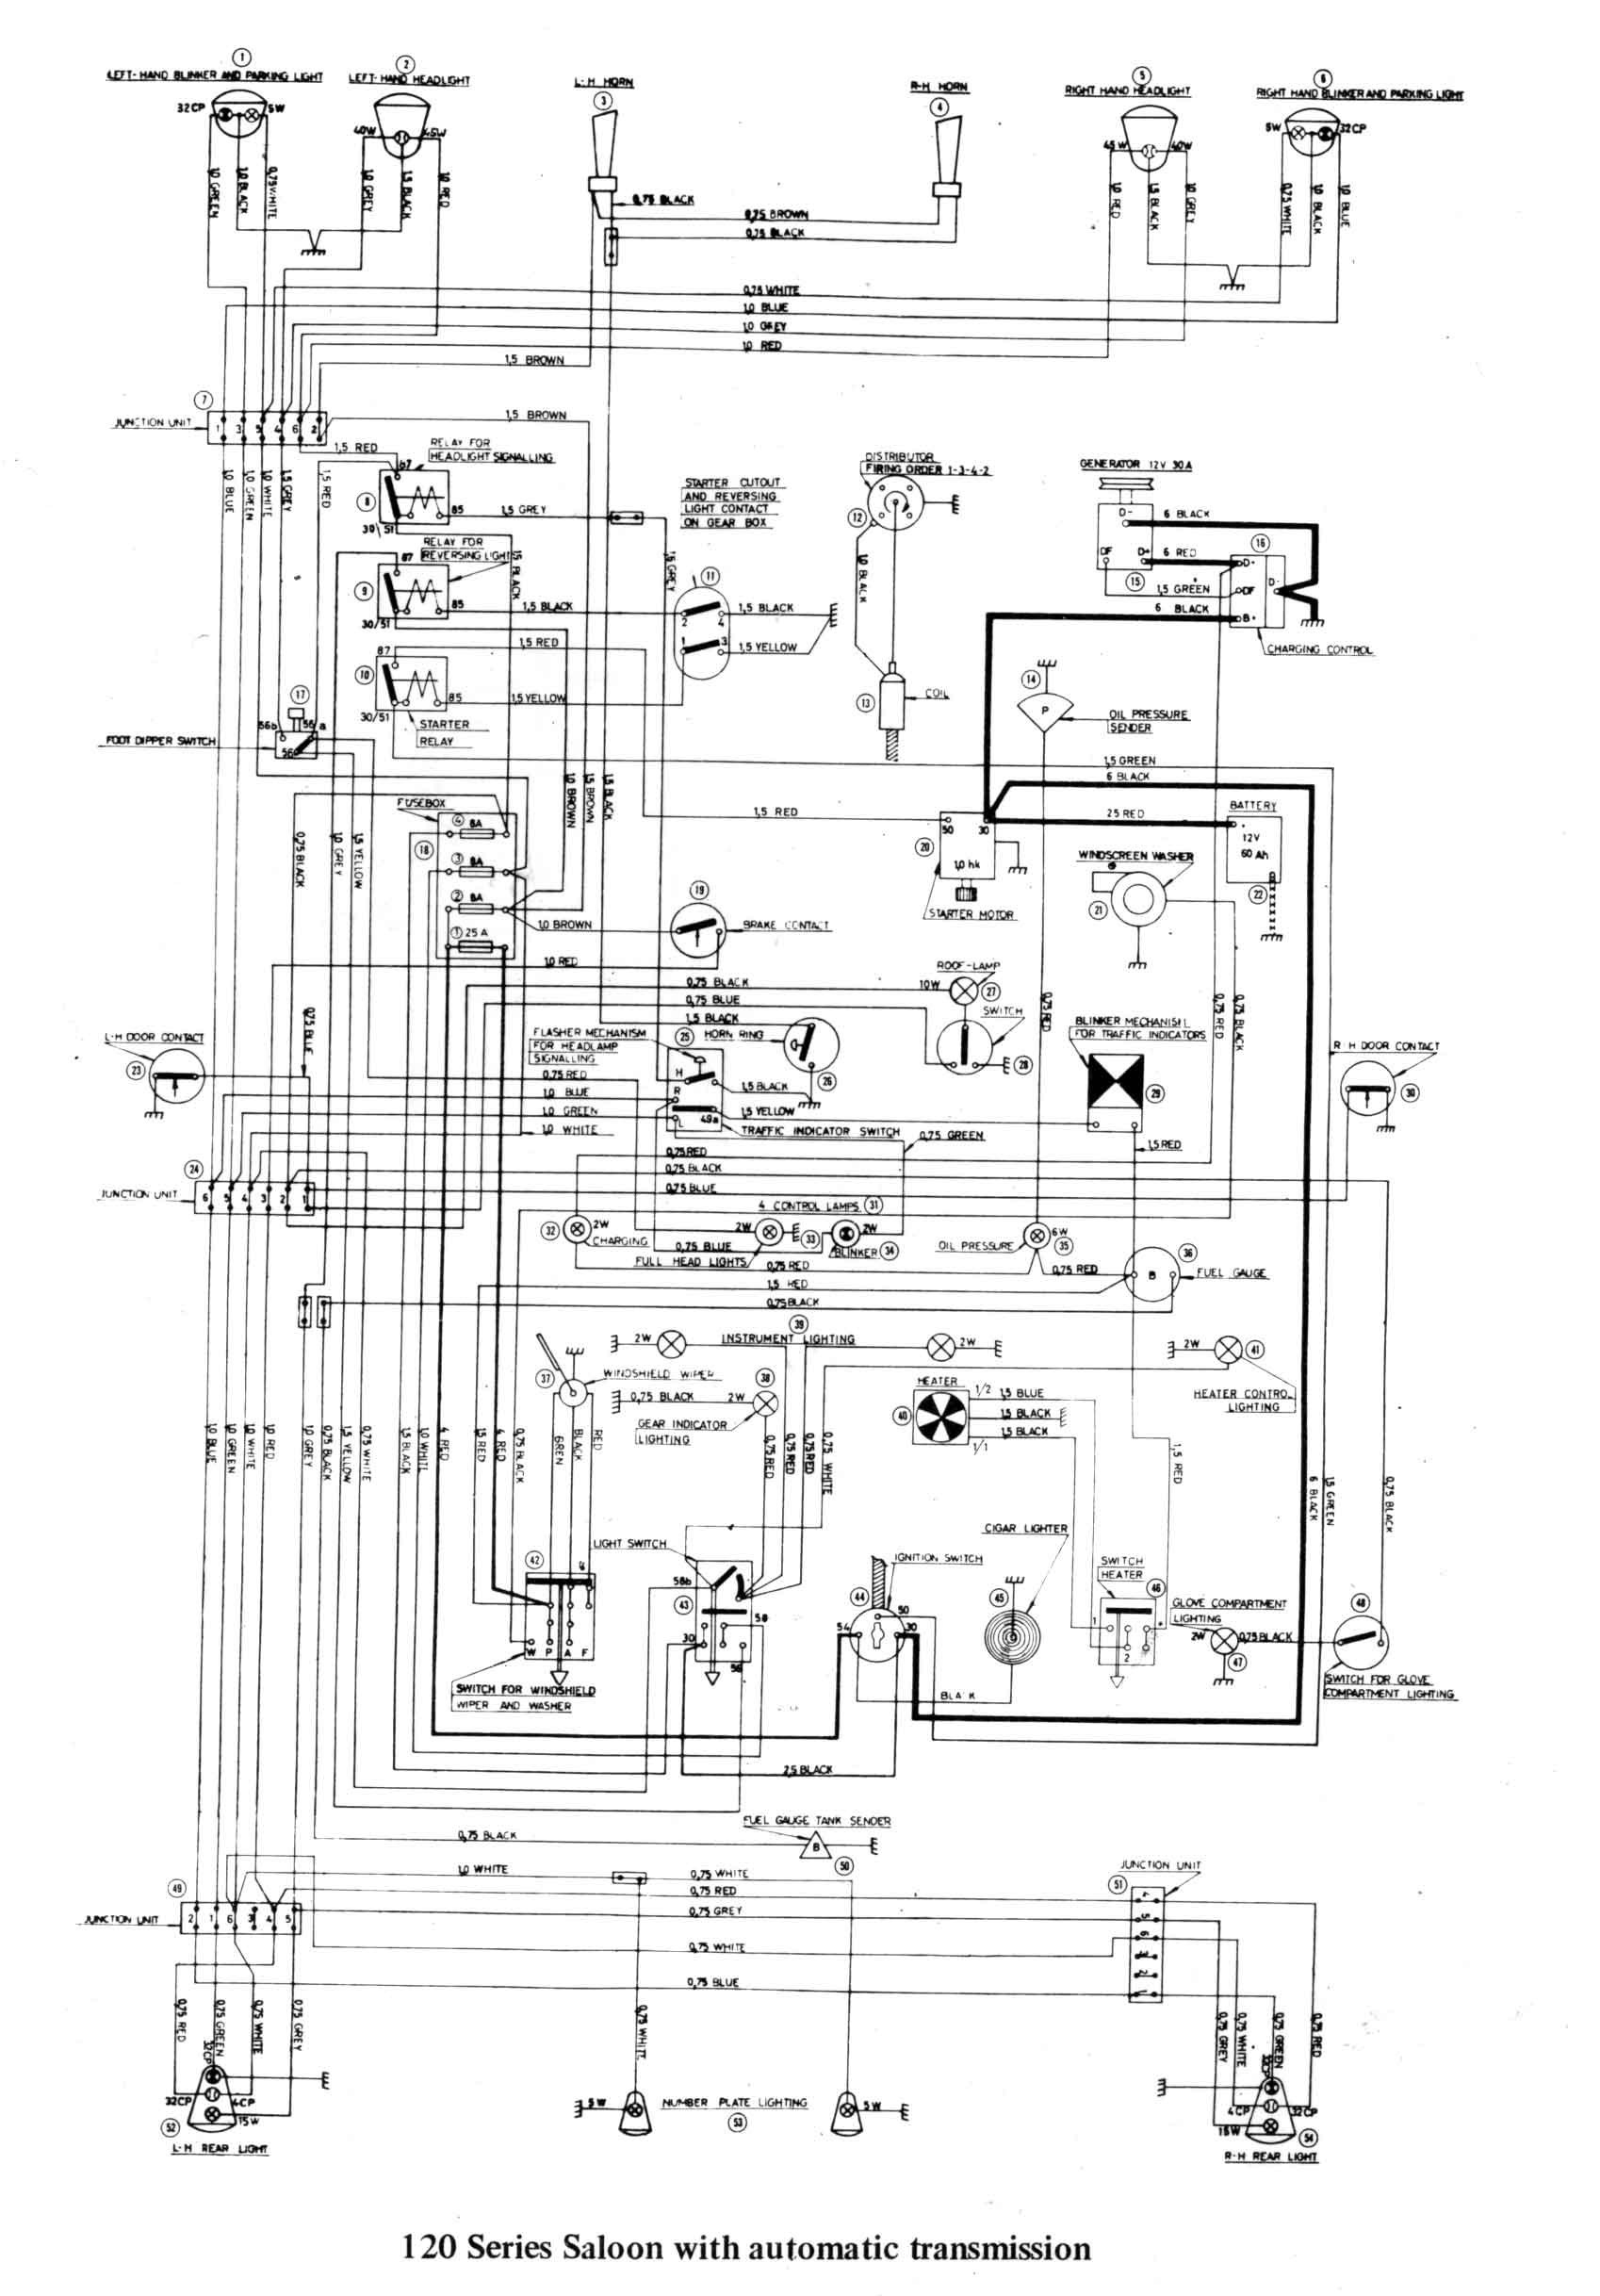 Semi Truck Suspension Diagram Freightliner Air System Wiring Related Post